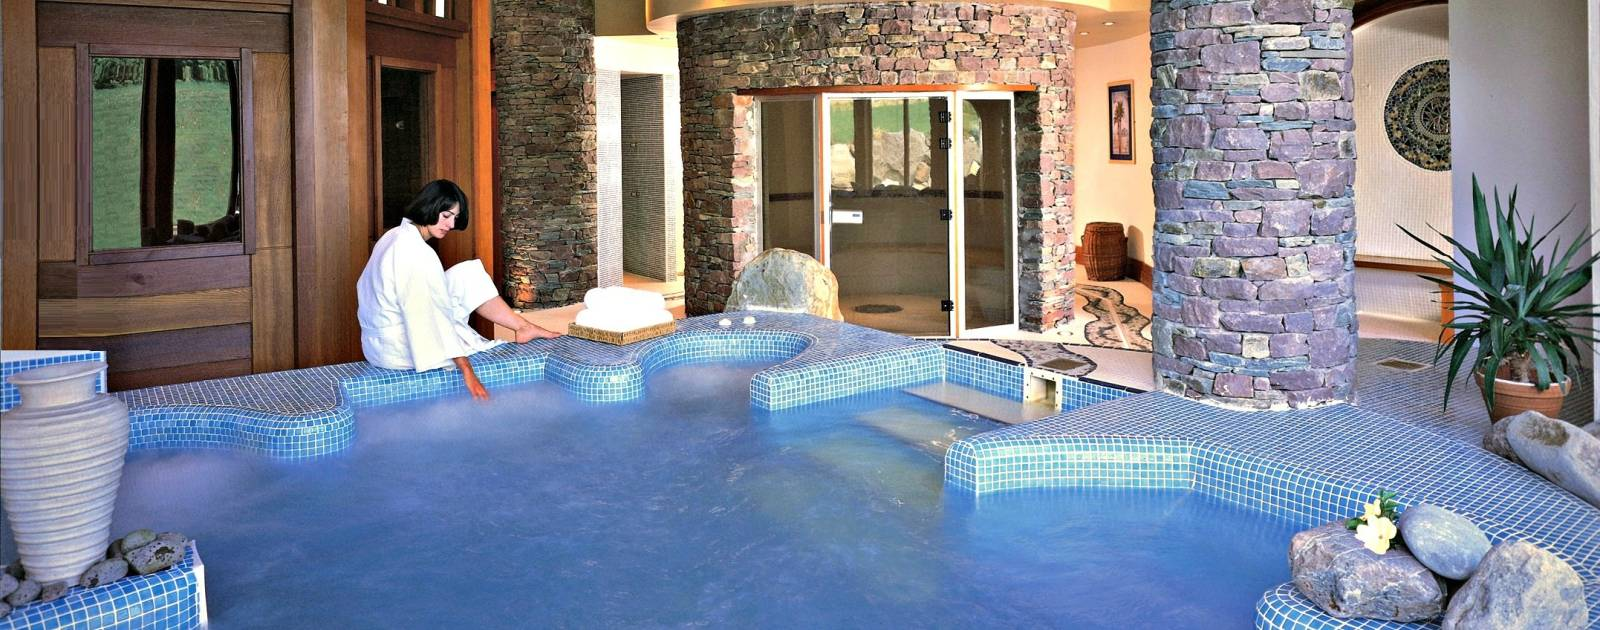 Relaxing Spa at Delphi Resort Connemara